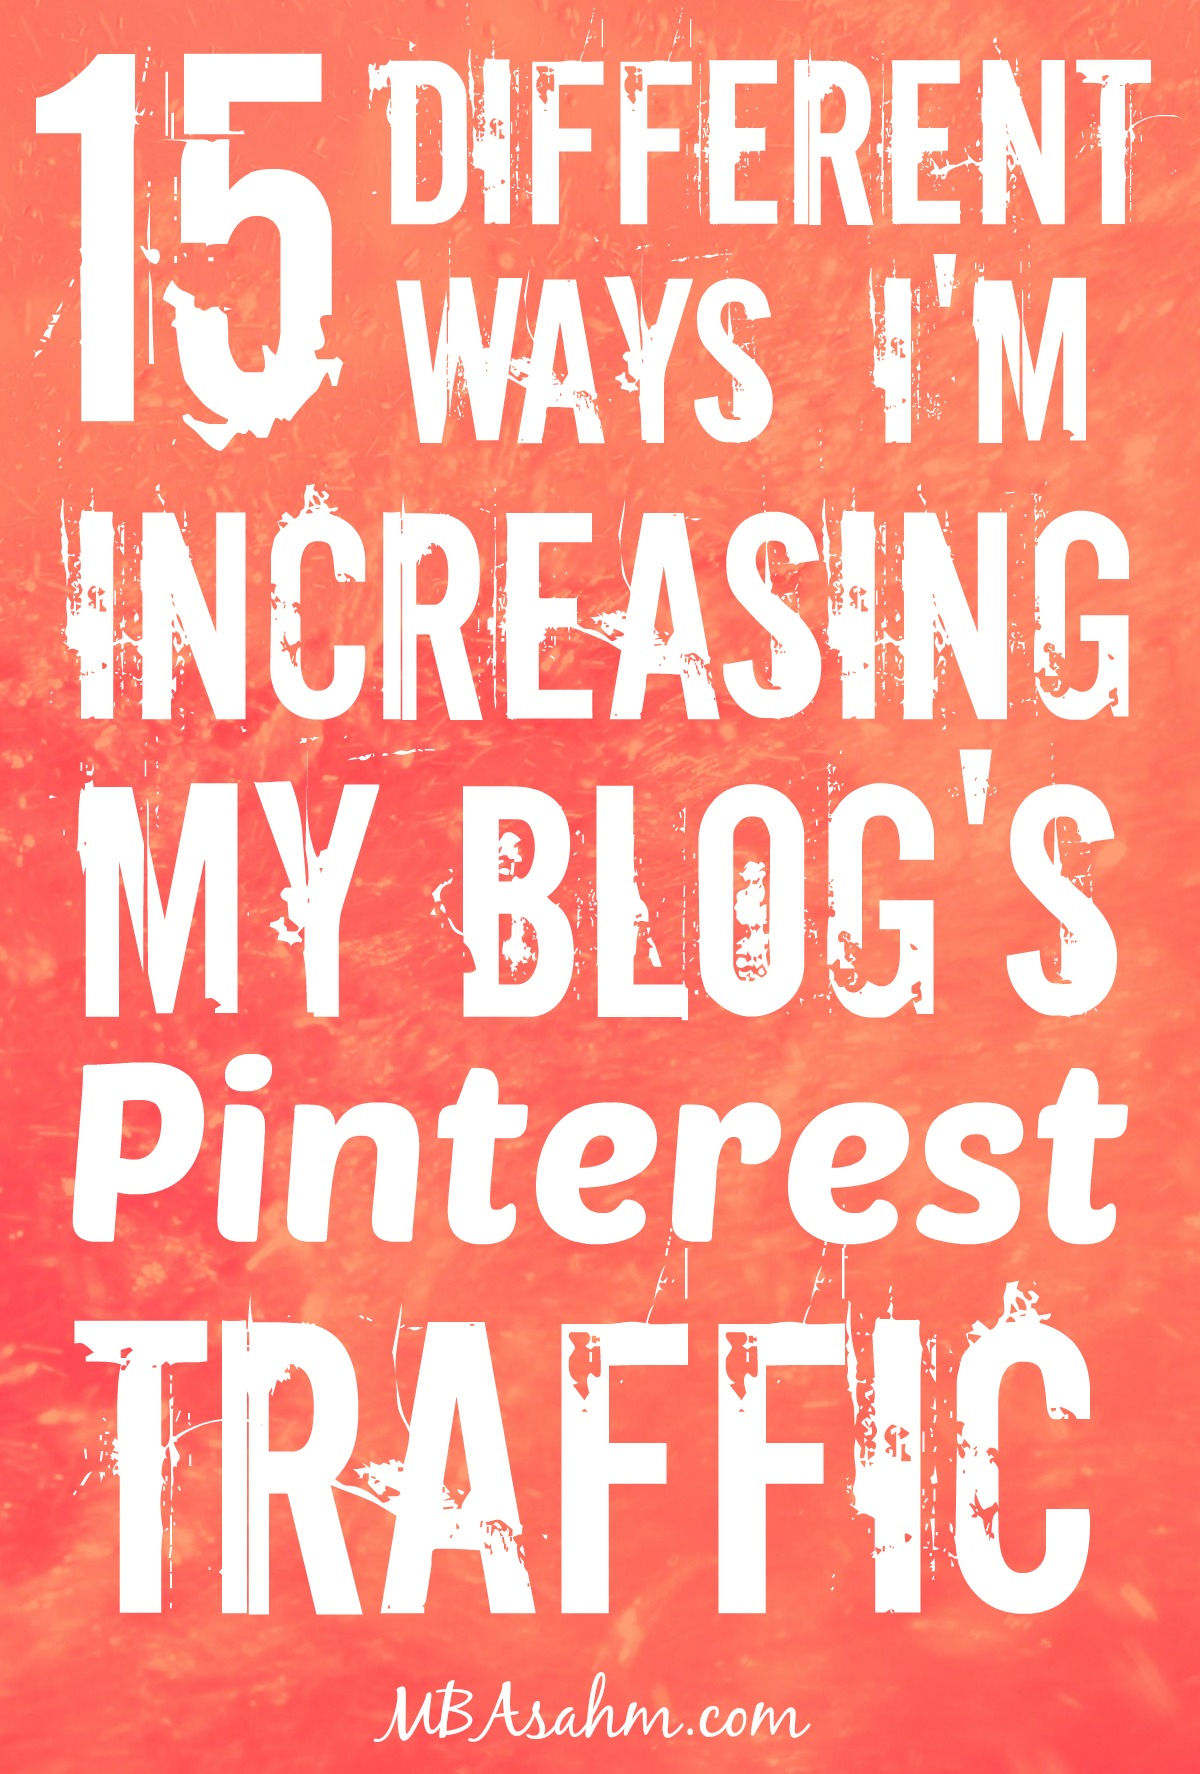 So much of my traffic comes from Pinterest that I'm constantly trying new ways to get more traffic. Click through to see what works!